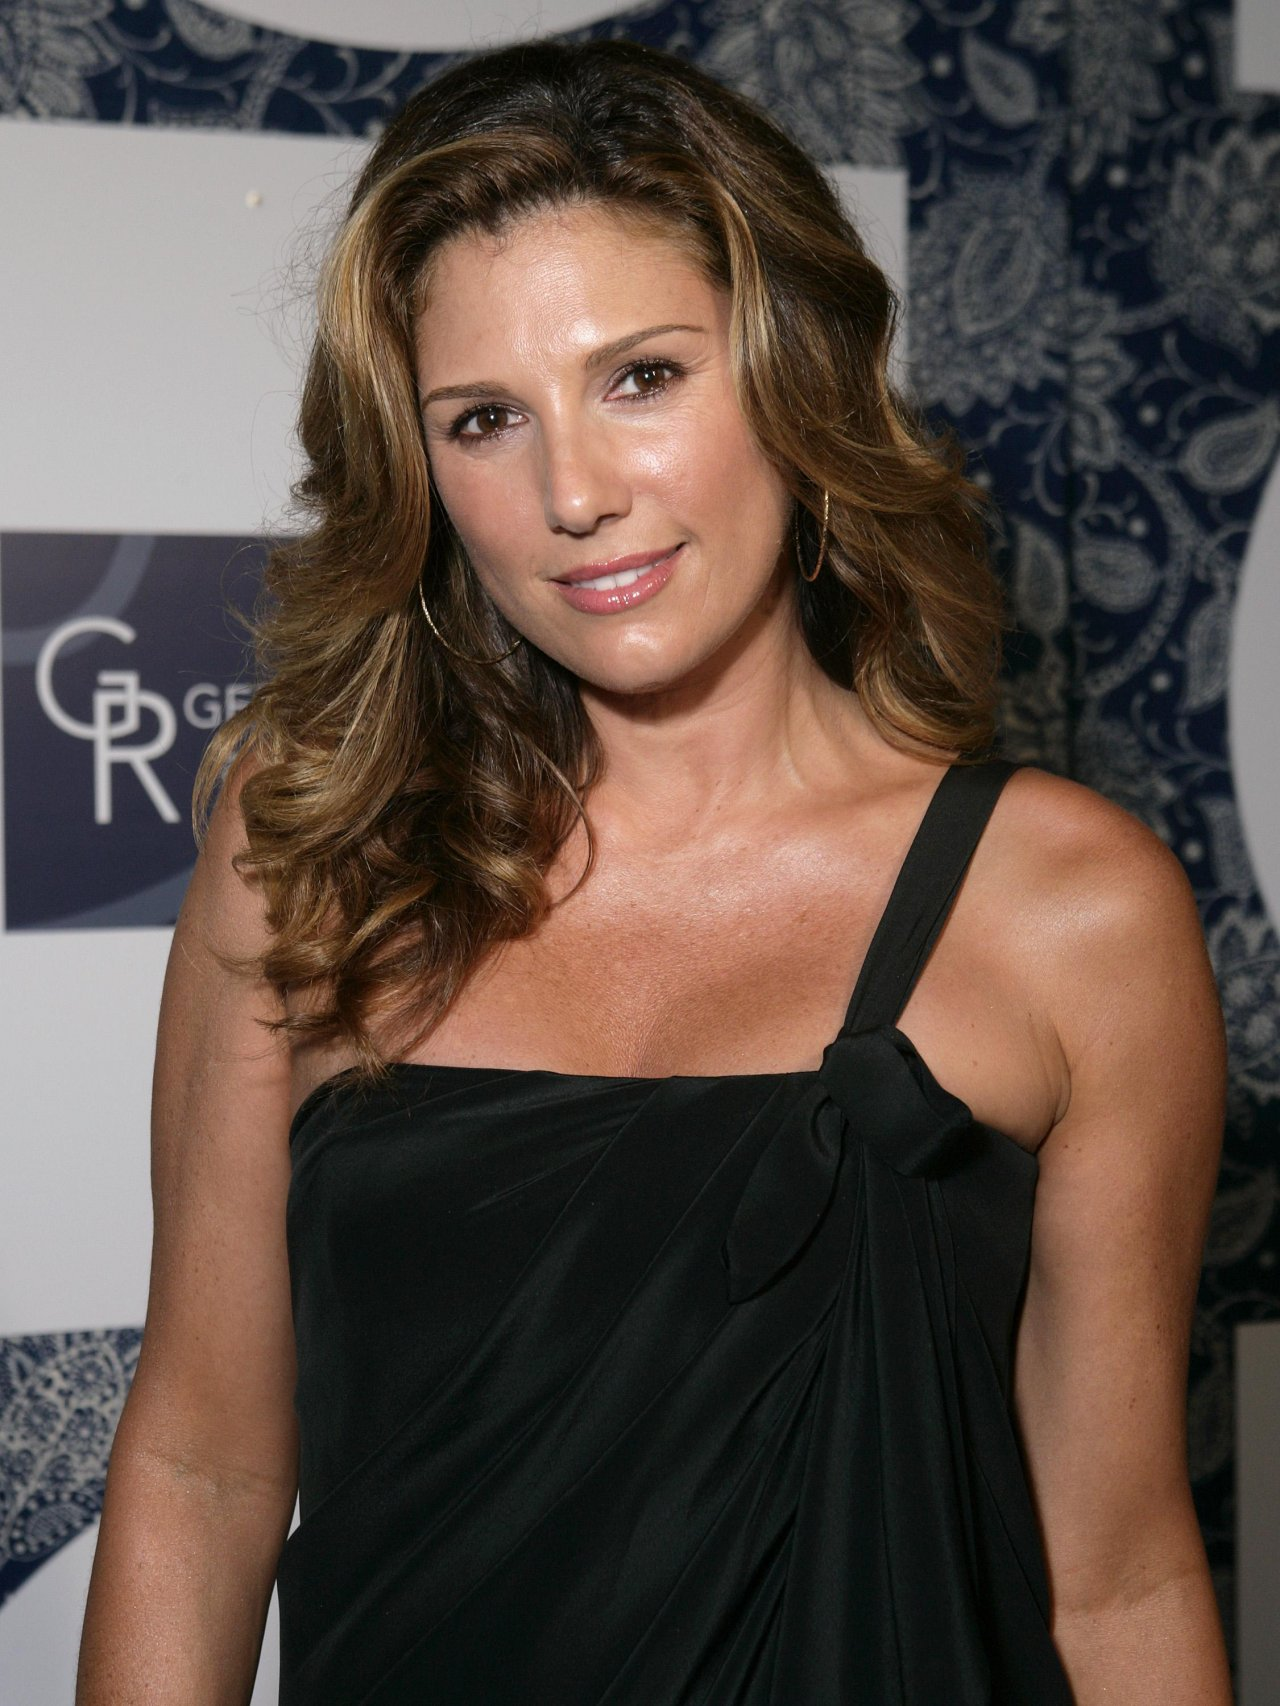 Model daisy fuentes wallpapers 7254 for Daisy fuentes wall mural